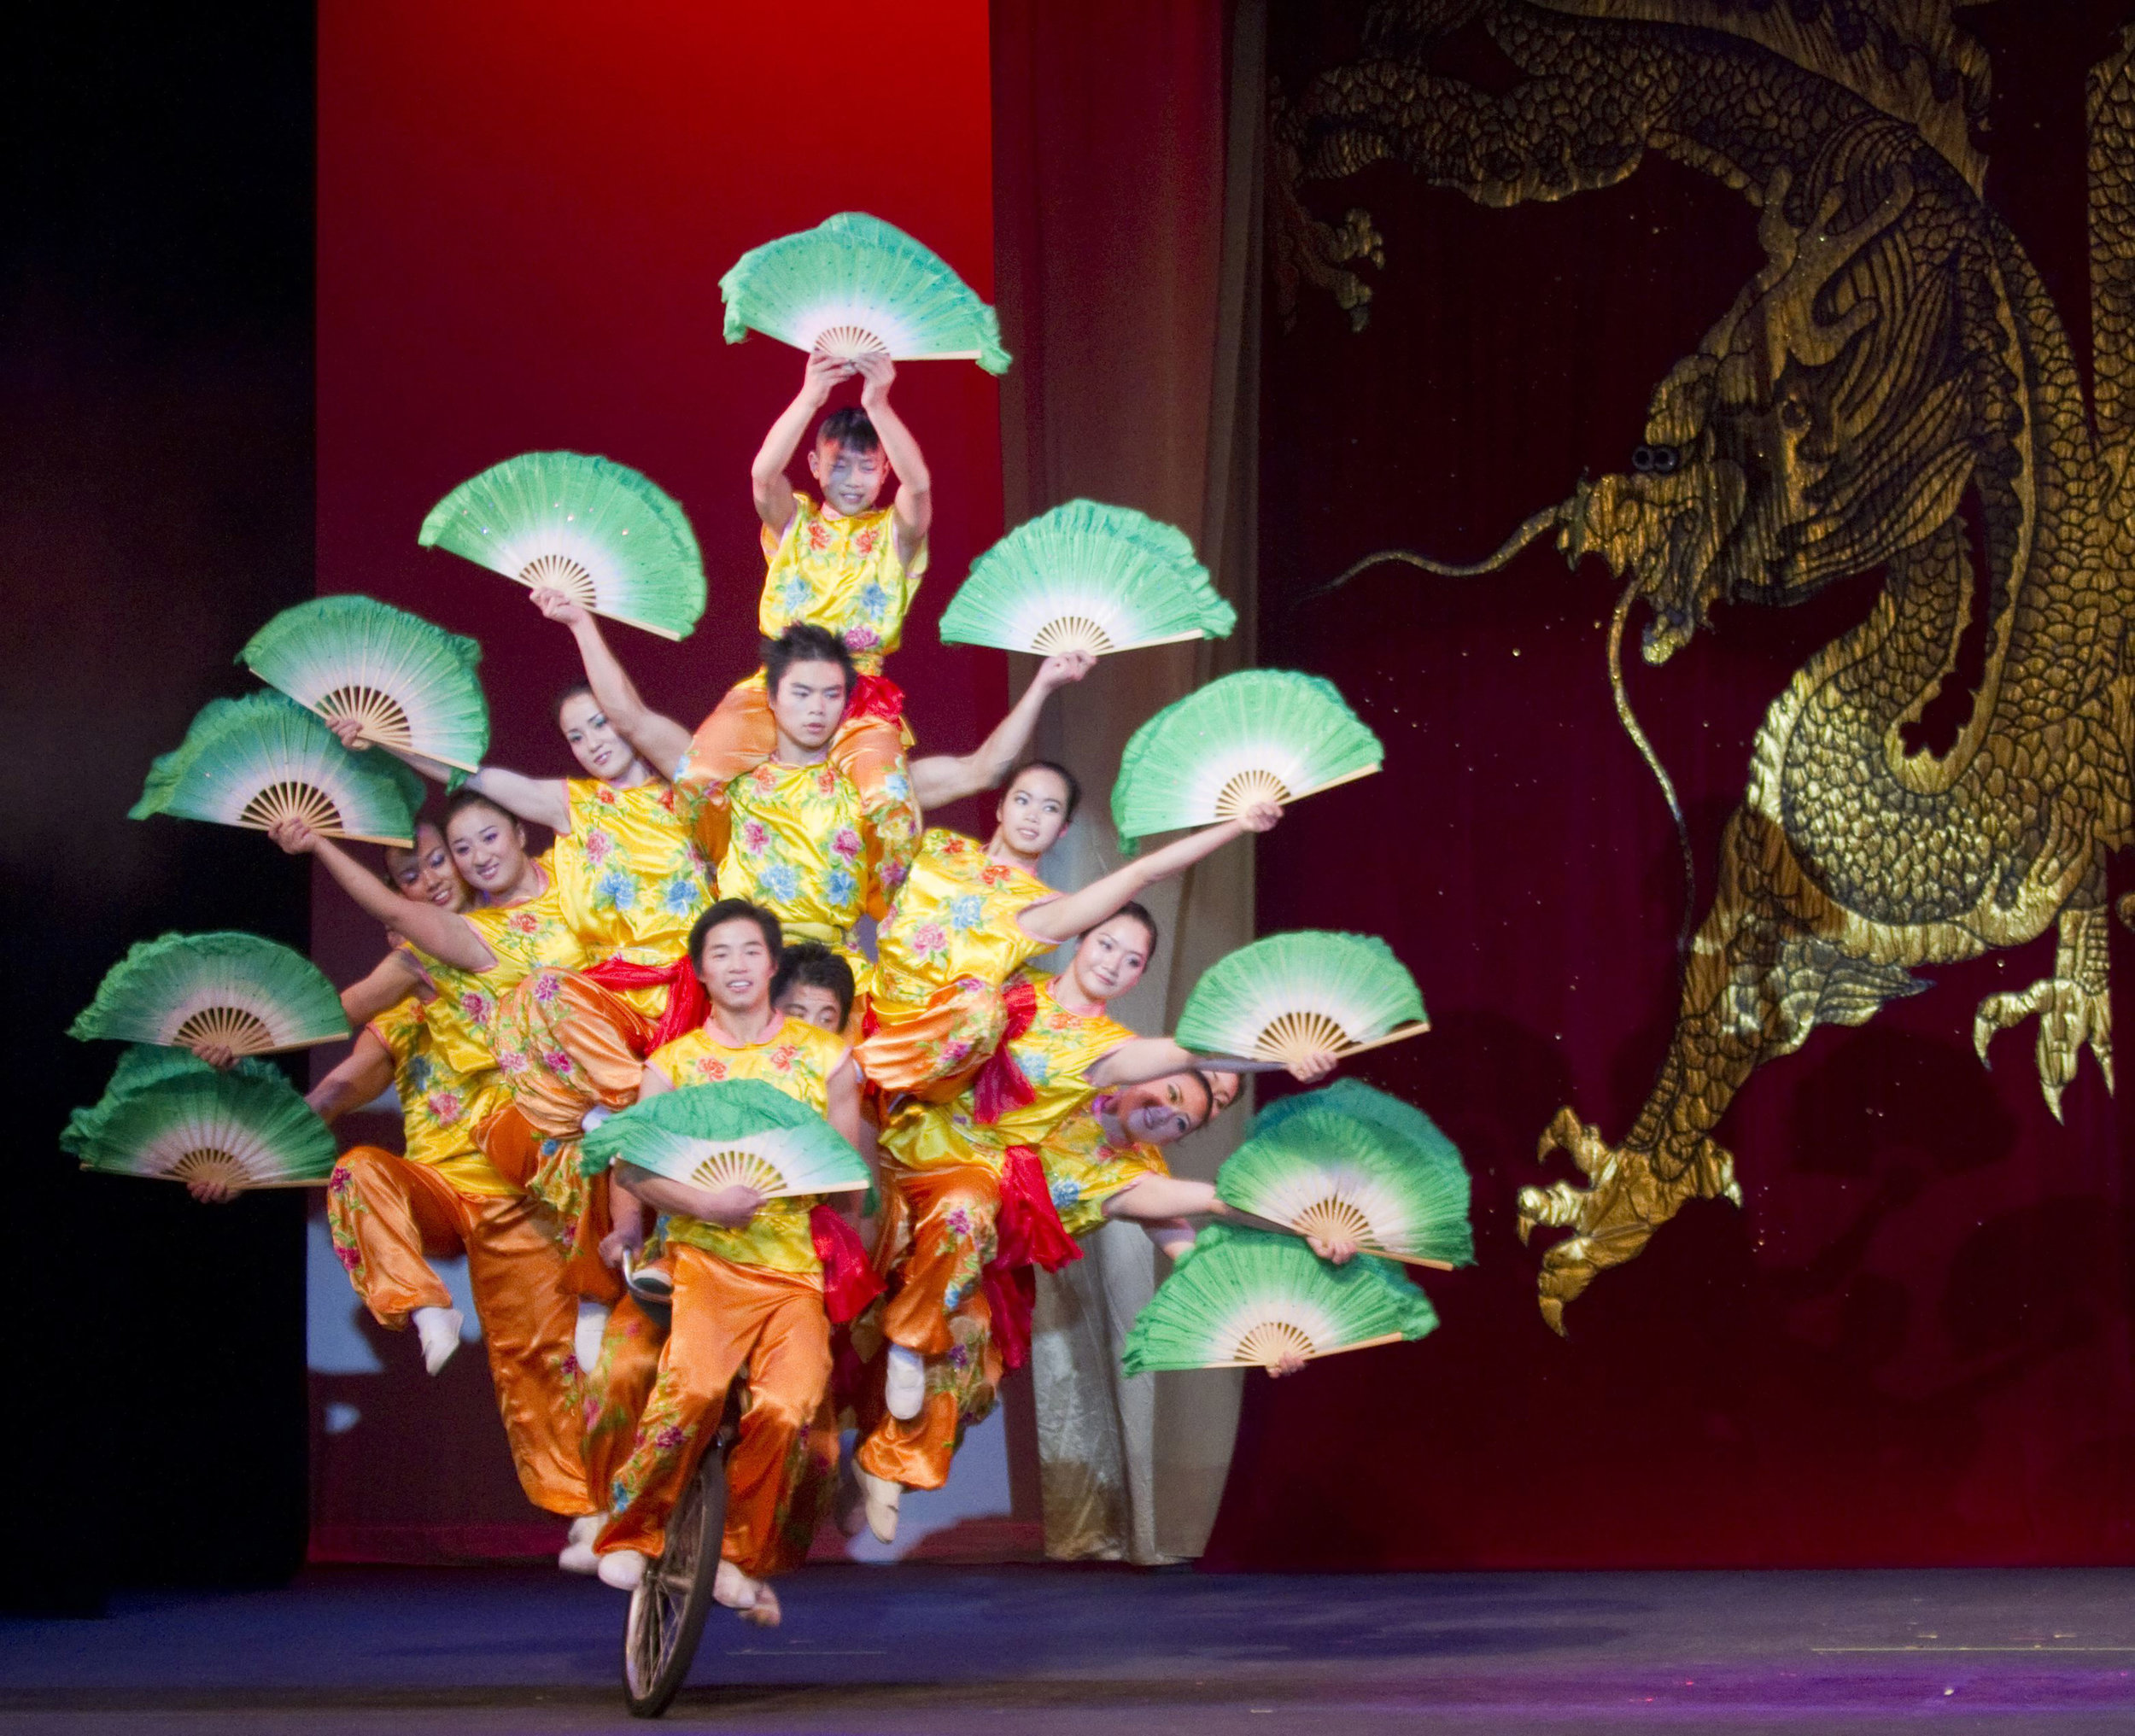 Peking_Acrobats_pc_Tom_Meinhold_Photography_1_300dpi.jpg